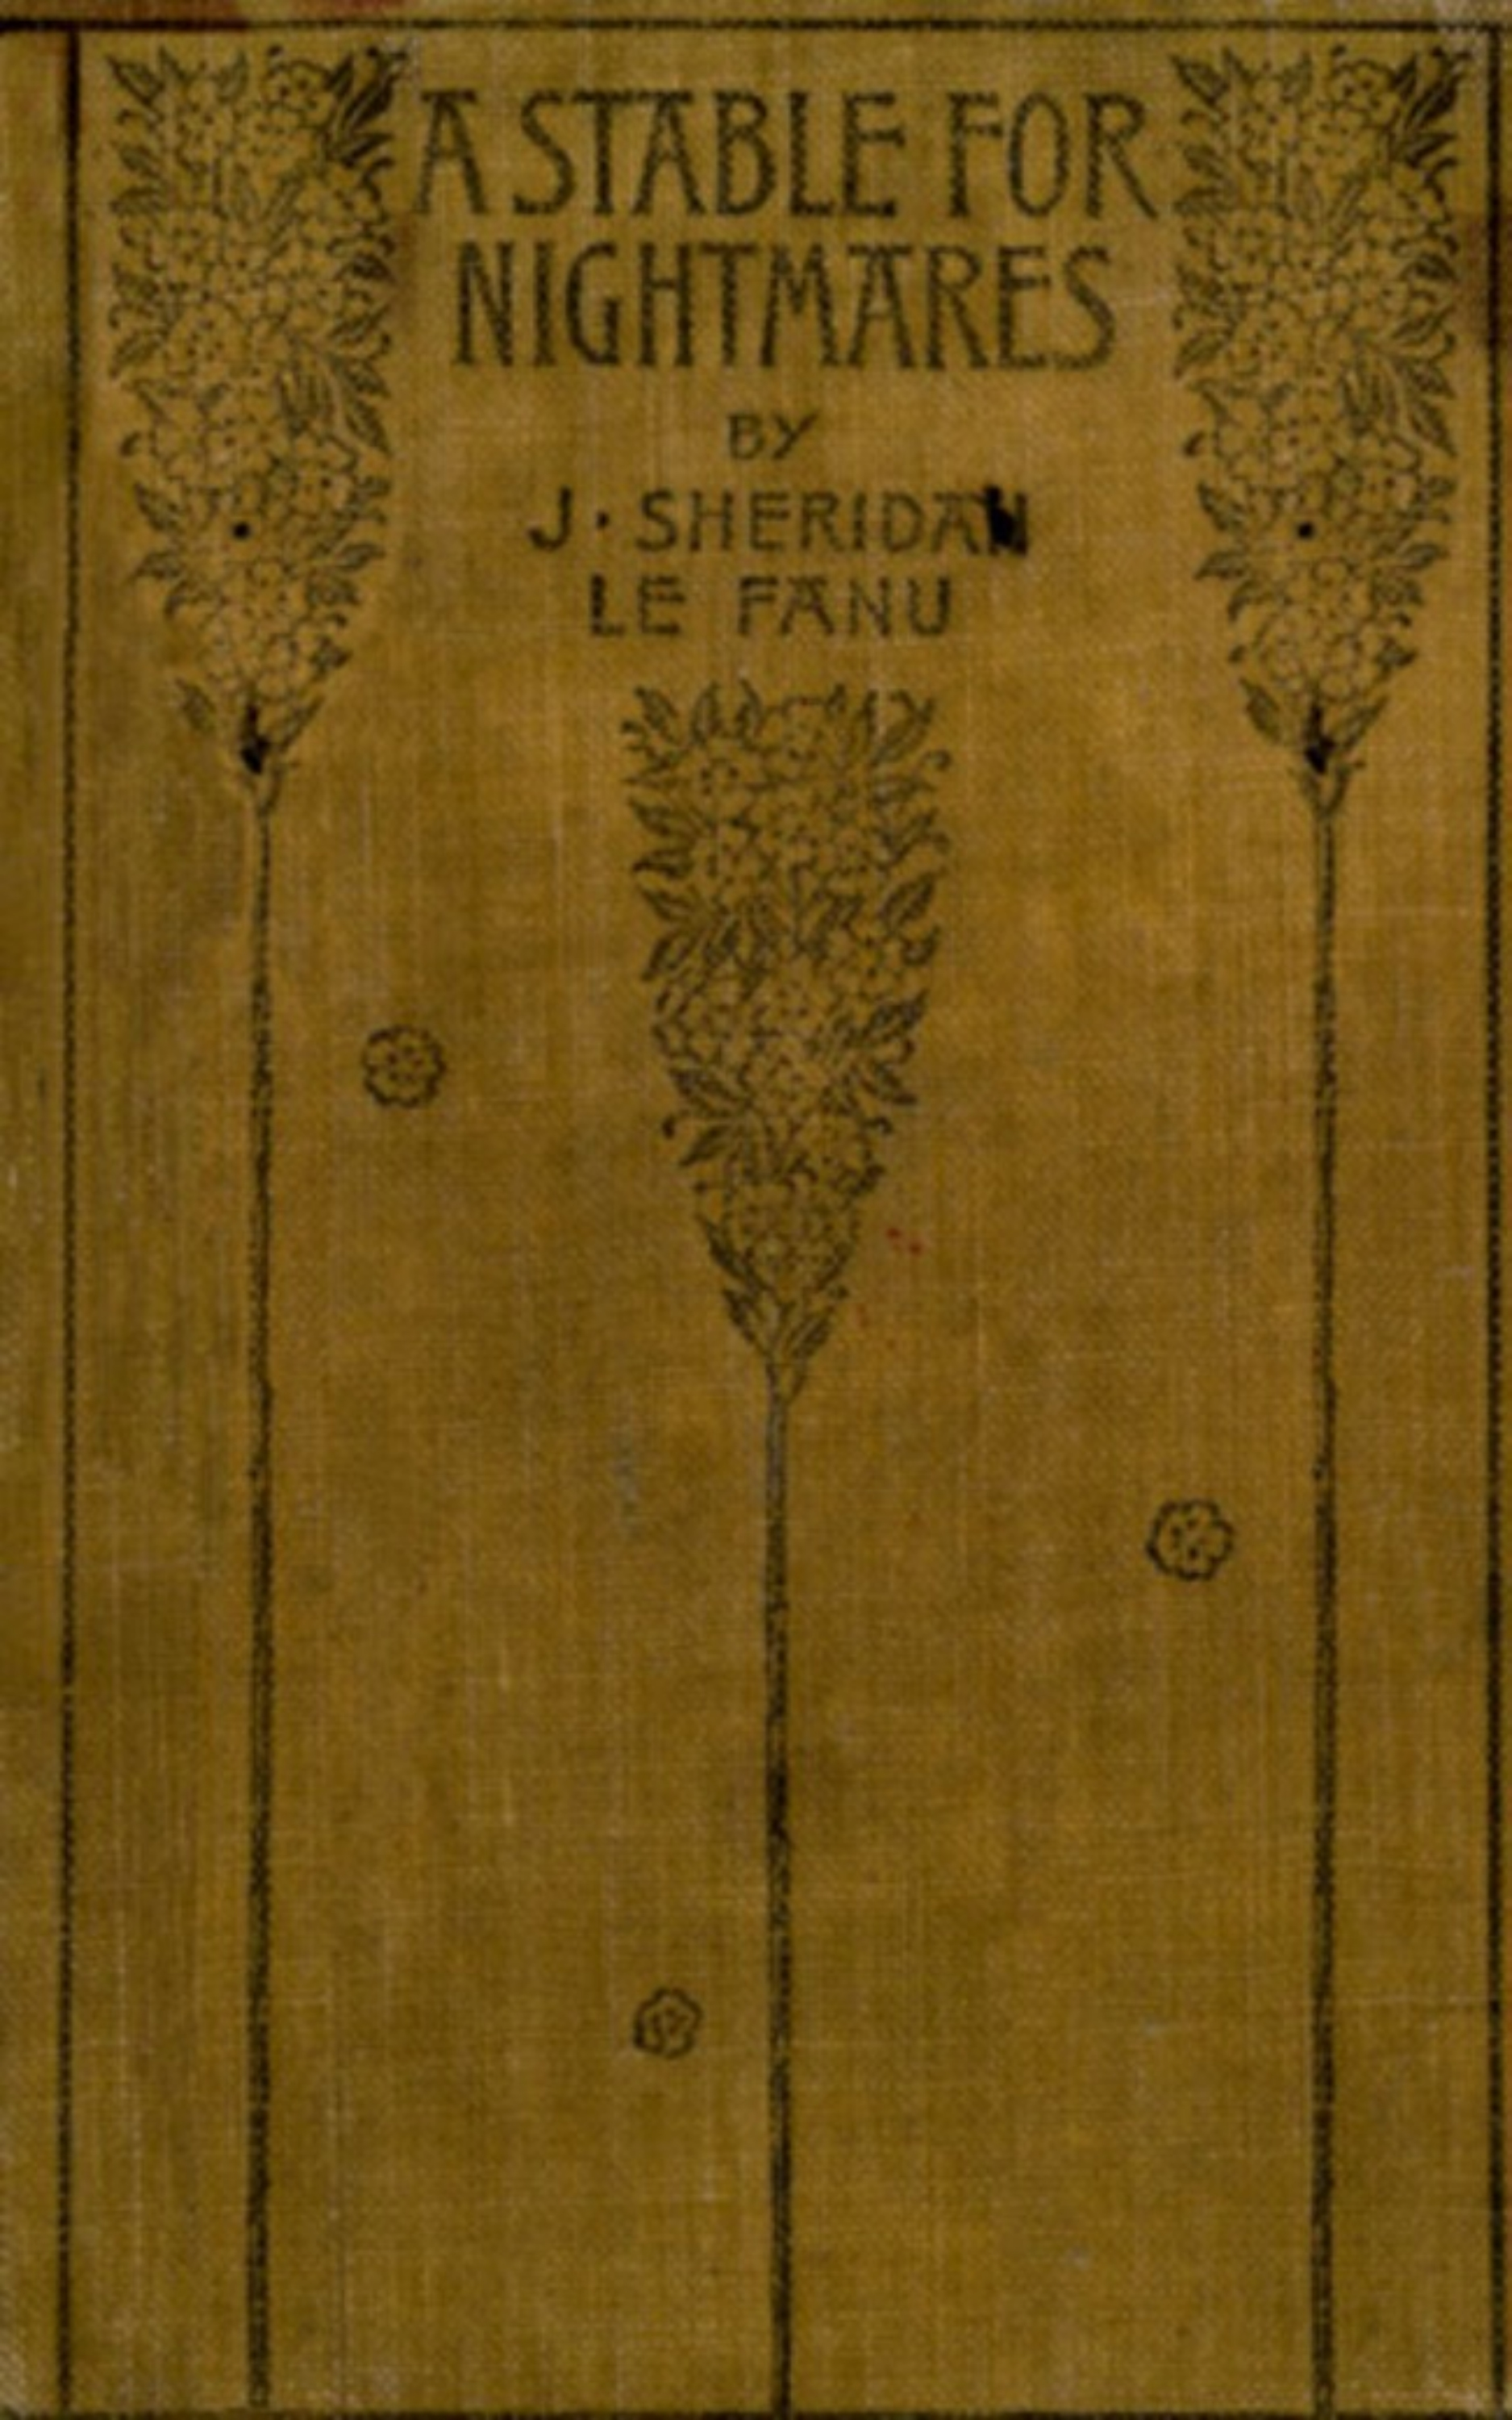 цена на Joseph Sheridan Le Fanu A Stable for Nightmares; or, Weird Tales